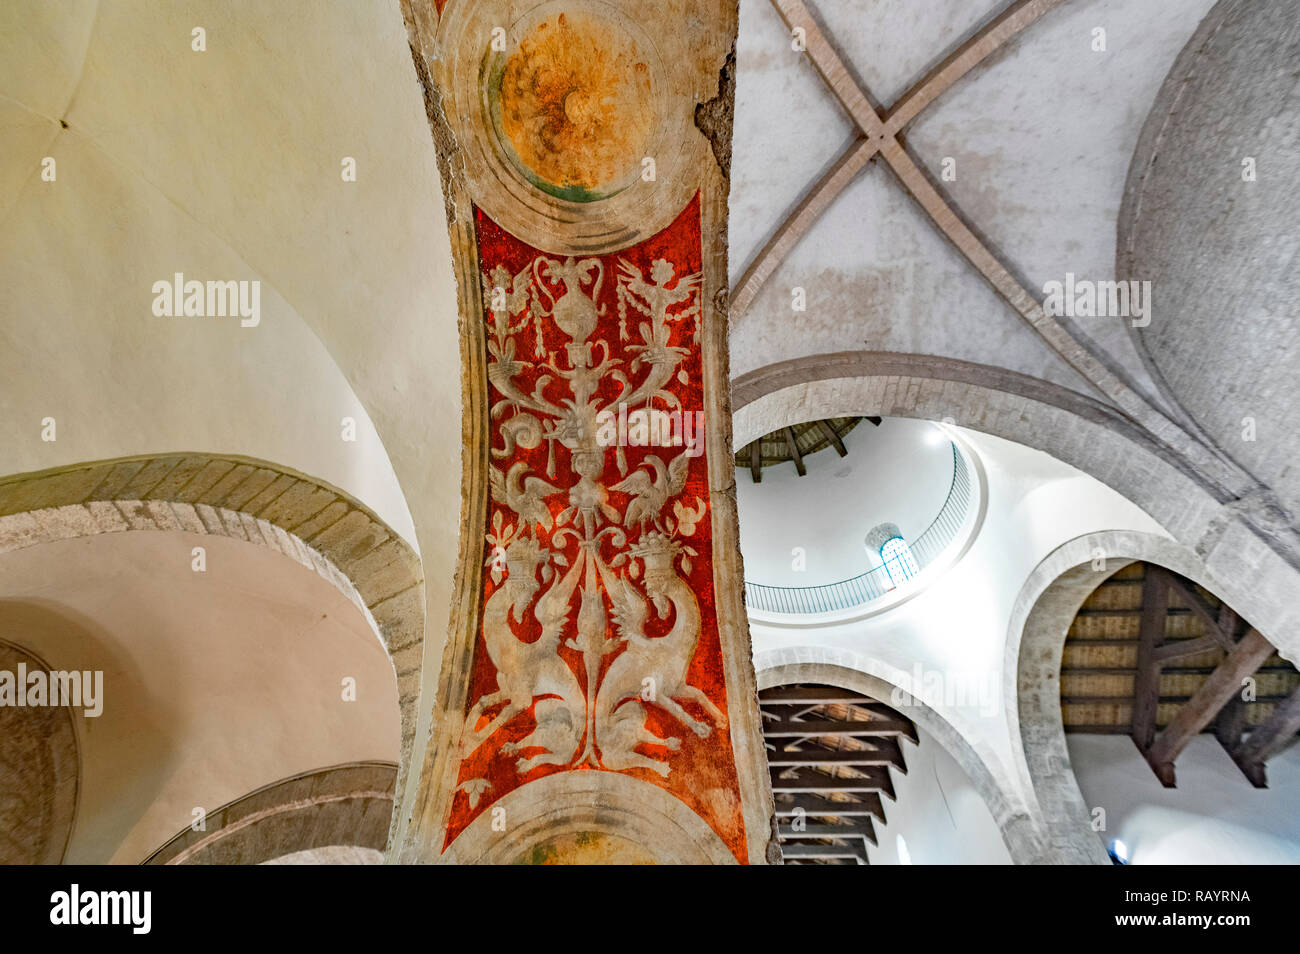 Italy Basilicat Acerenza Cathedral apse frescoes unknown authors - Stock Image